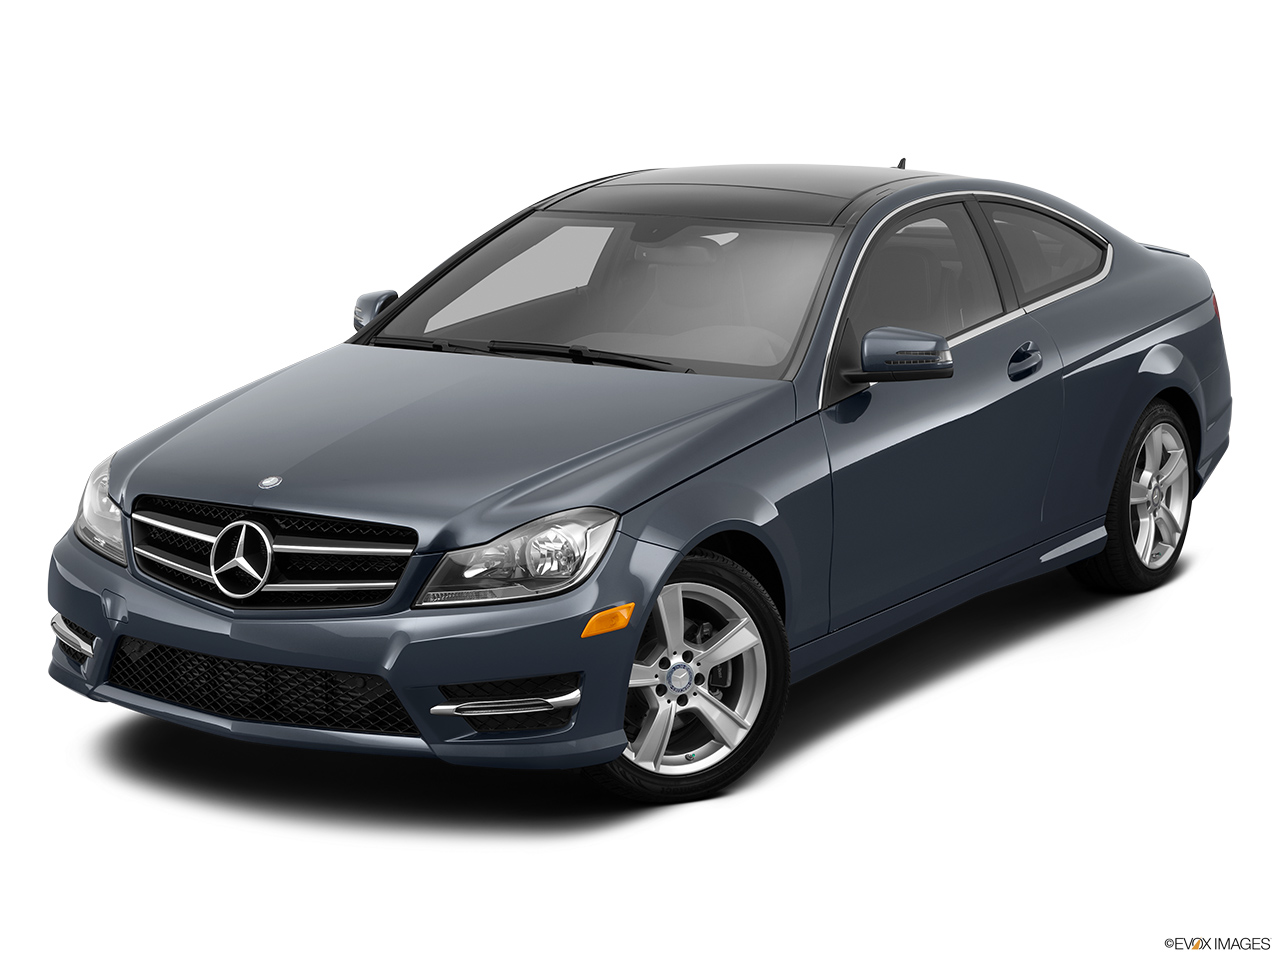 2014 mercedes benz c class coupe c250 rwd. Black Bedroom Furniture Sets. Home Design Ideas